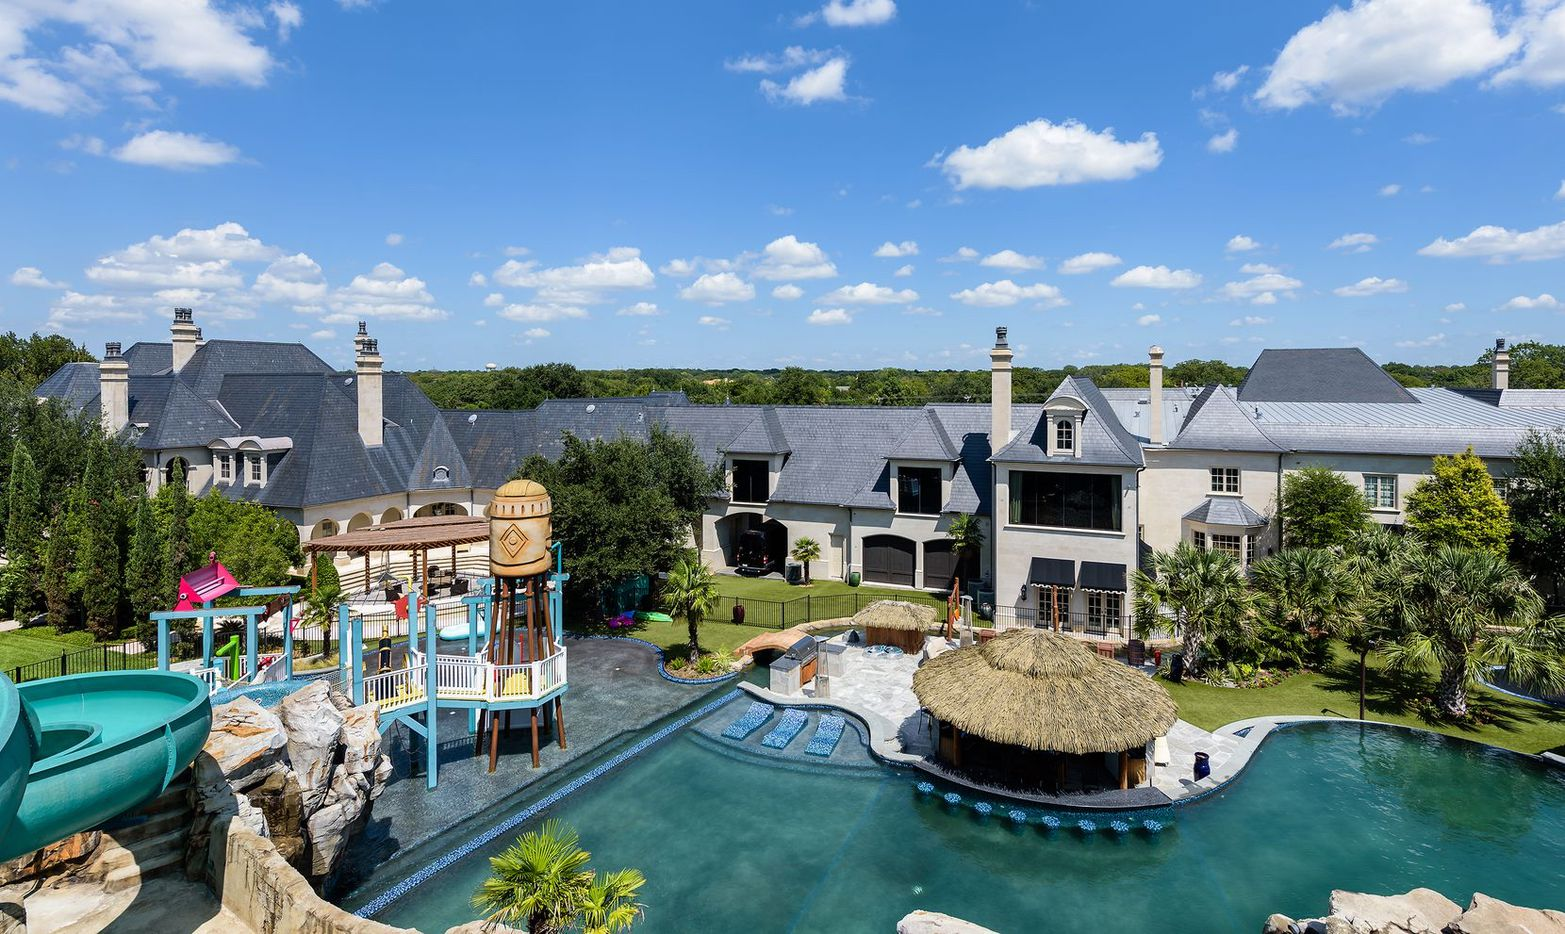 The more than four acre Preston Hollow estate has its own waterpark.